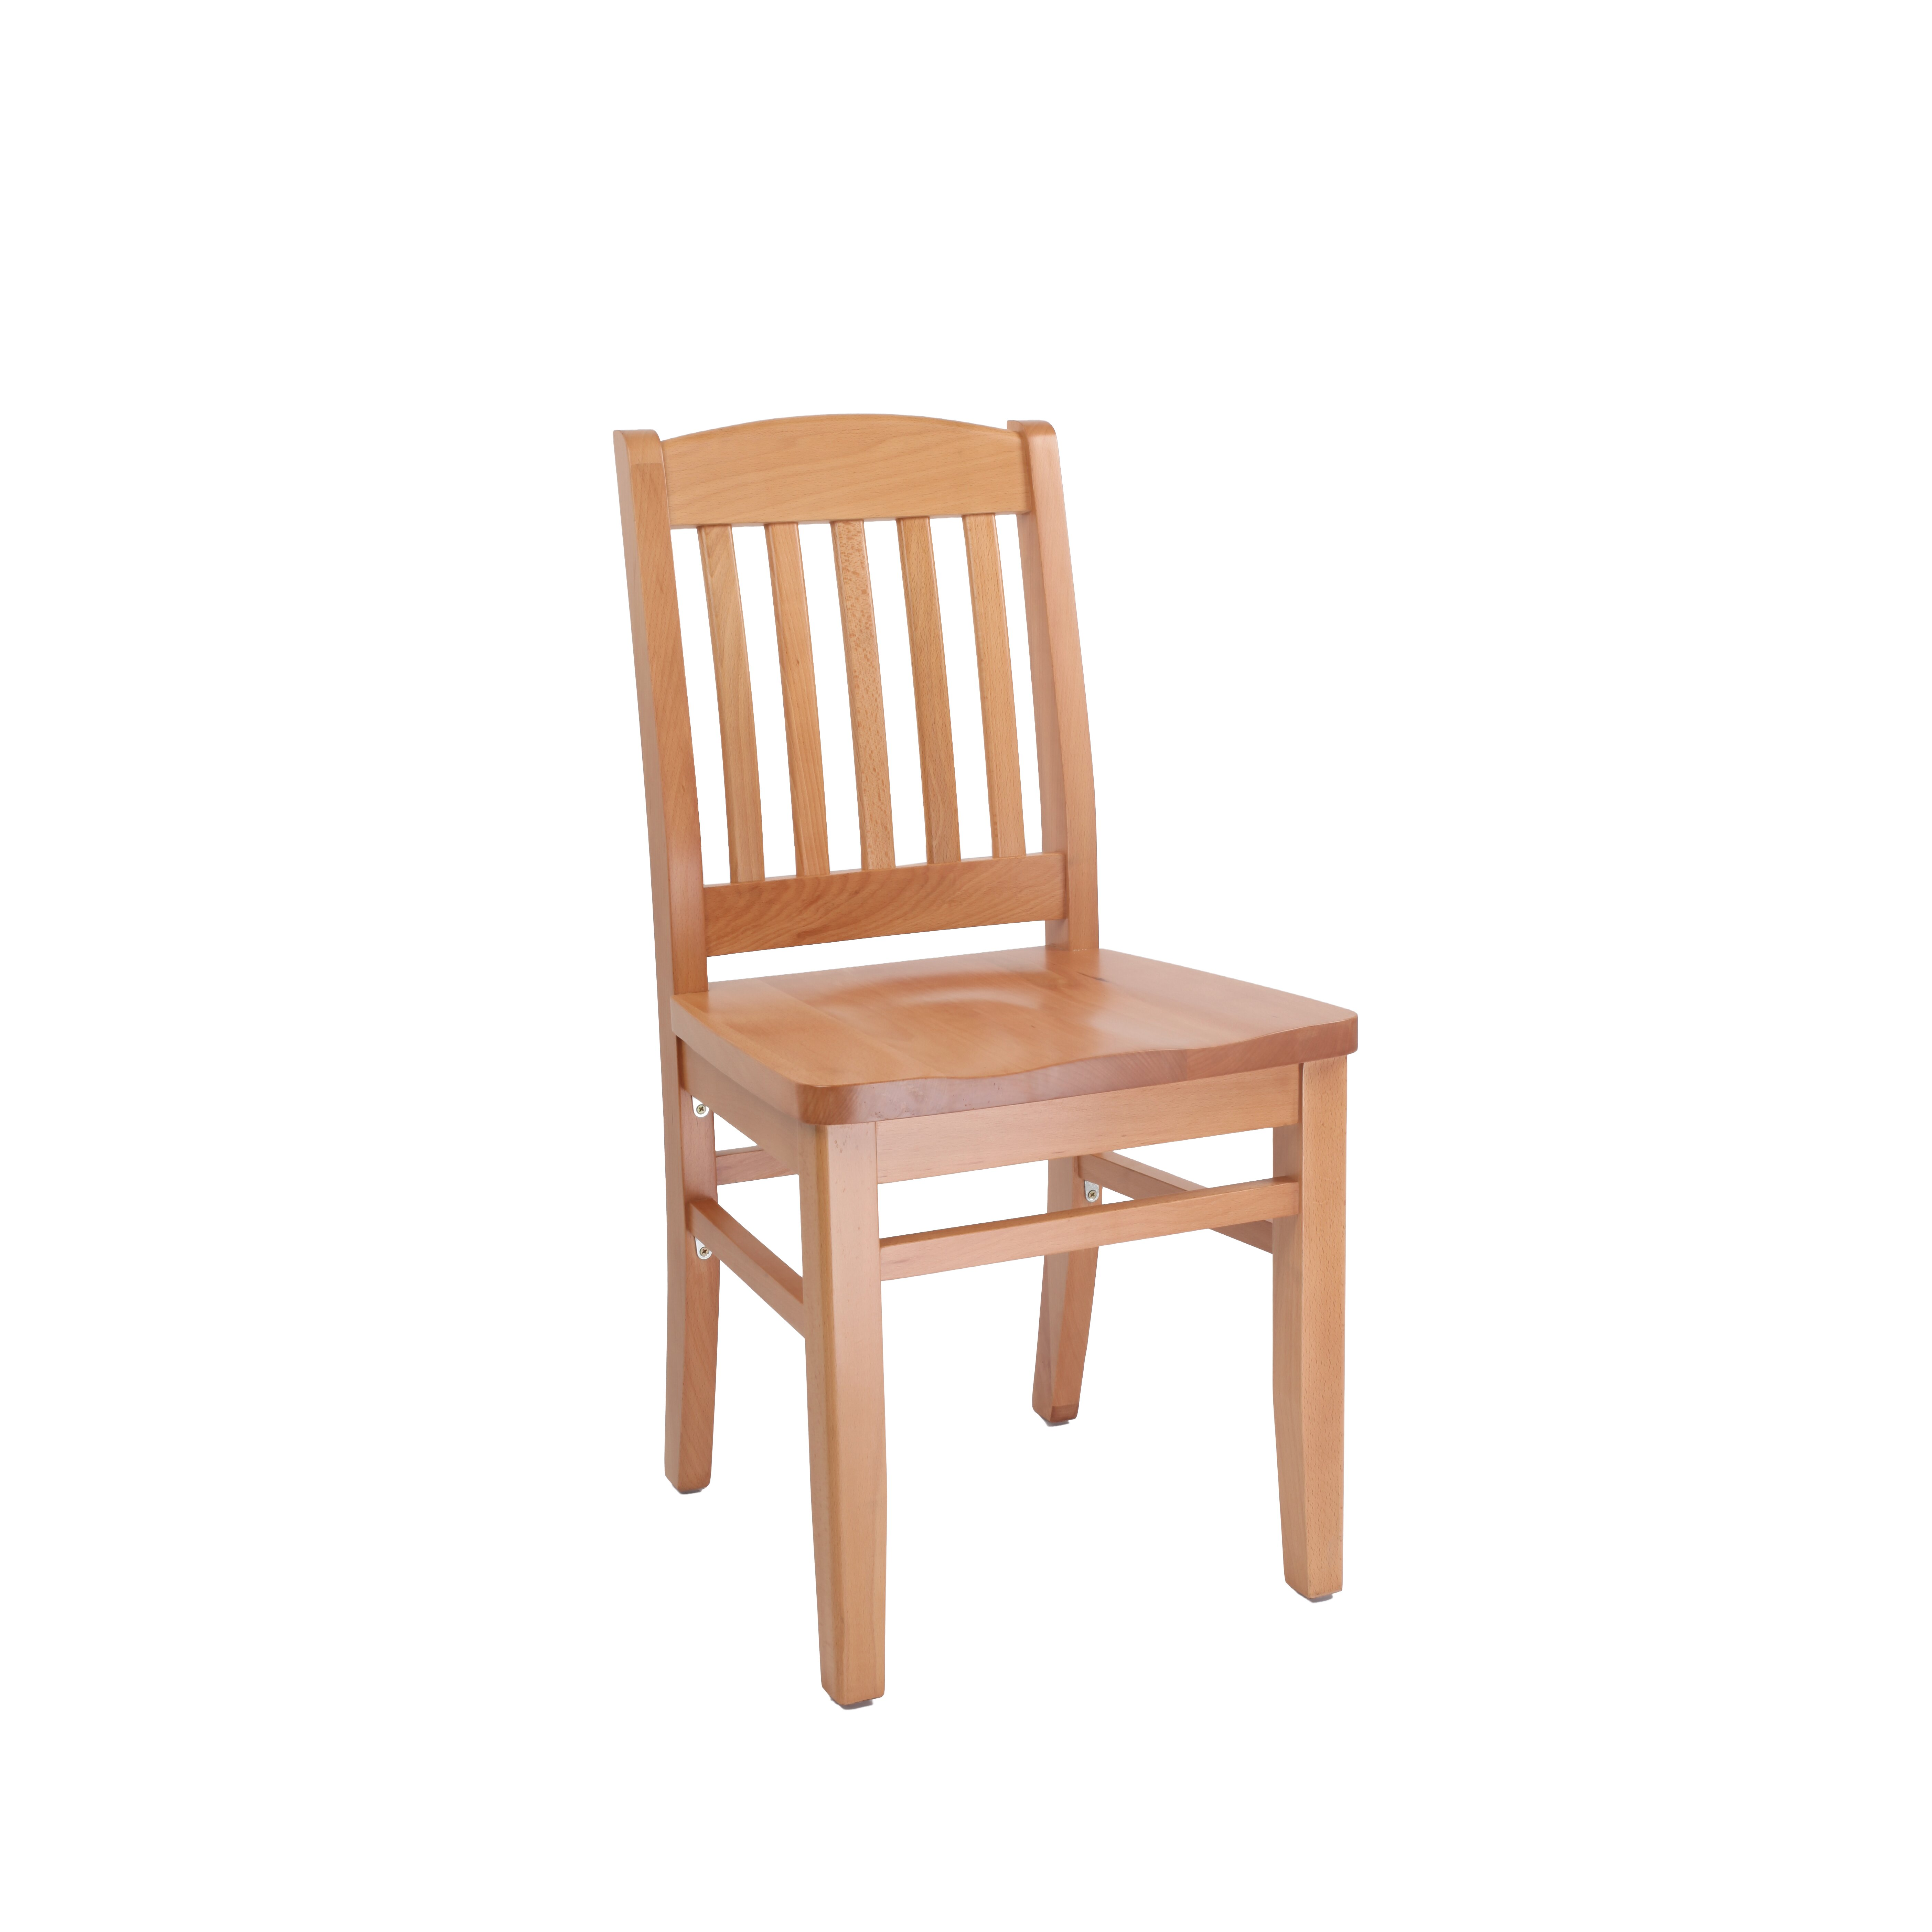 mission shaker kitchen dining chairs c a~ kitchen chairs with wheels QUICK VIEW Bulldog Chair